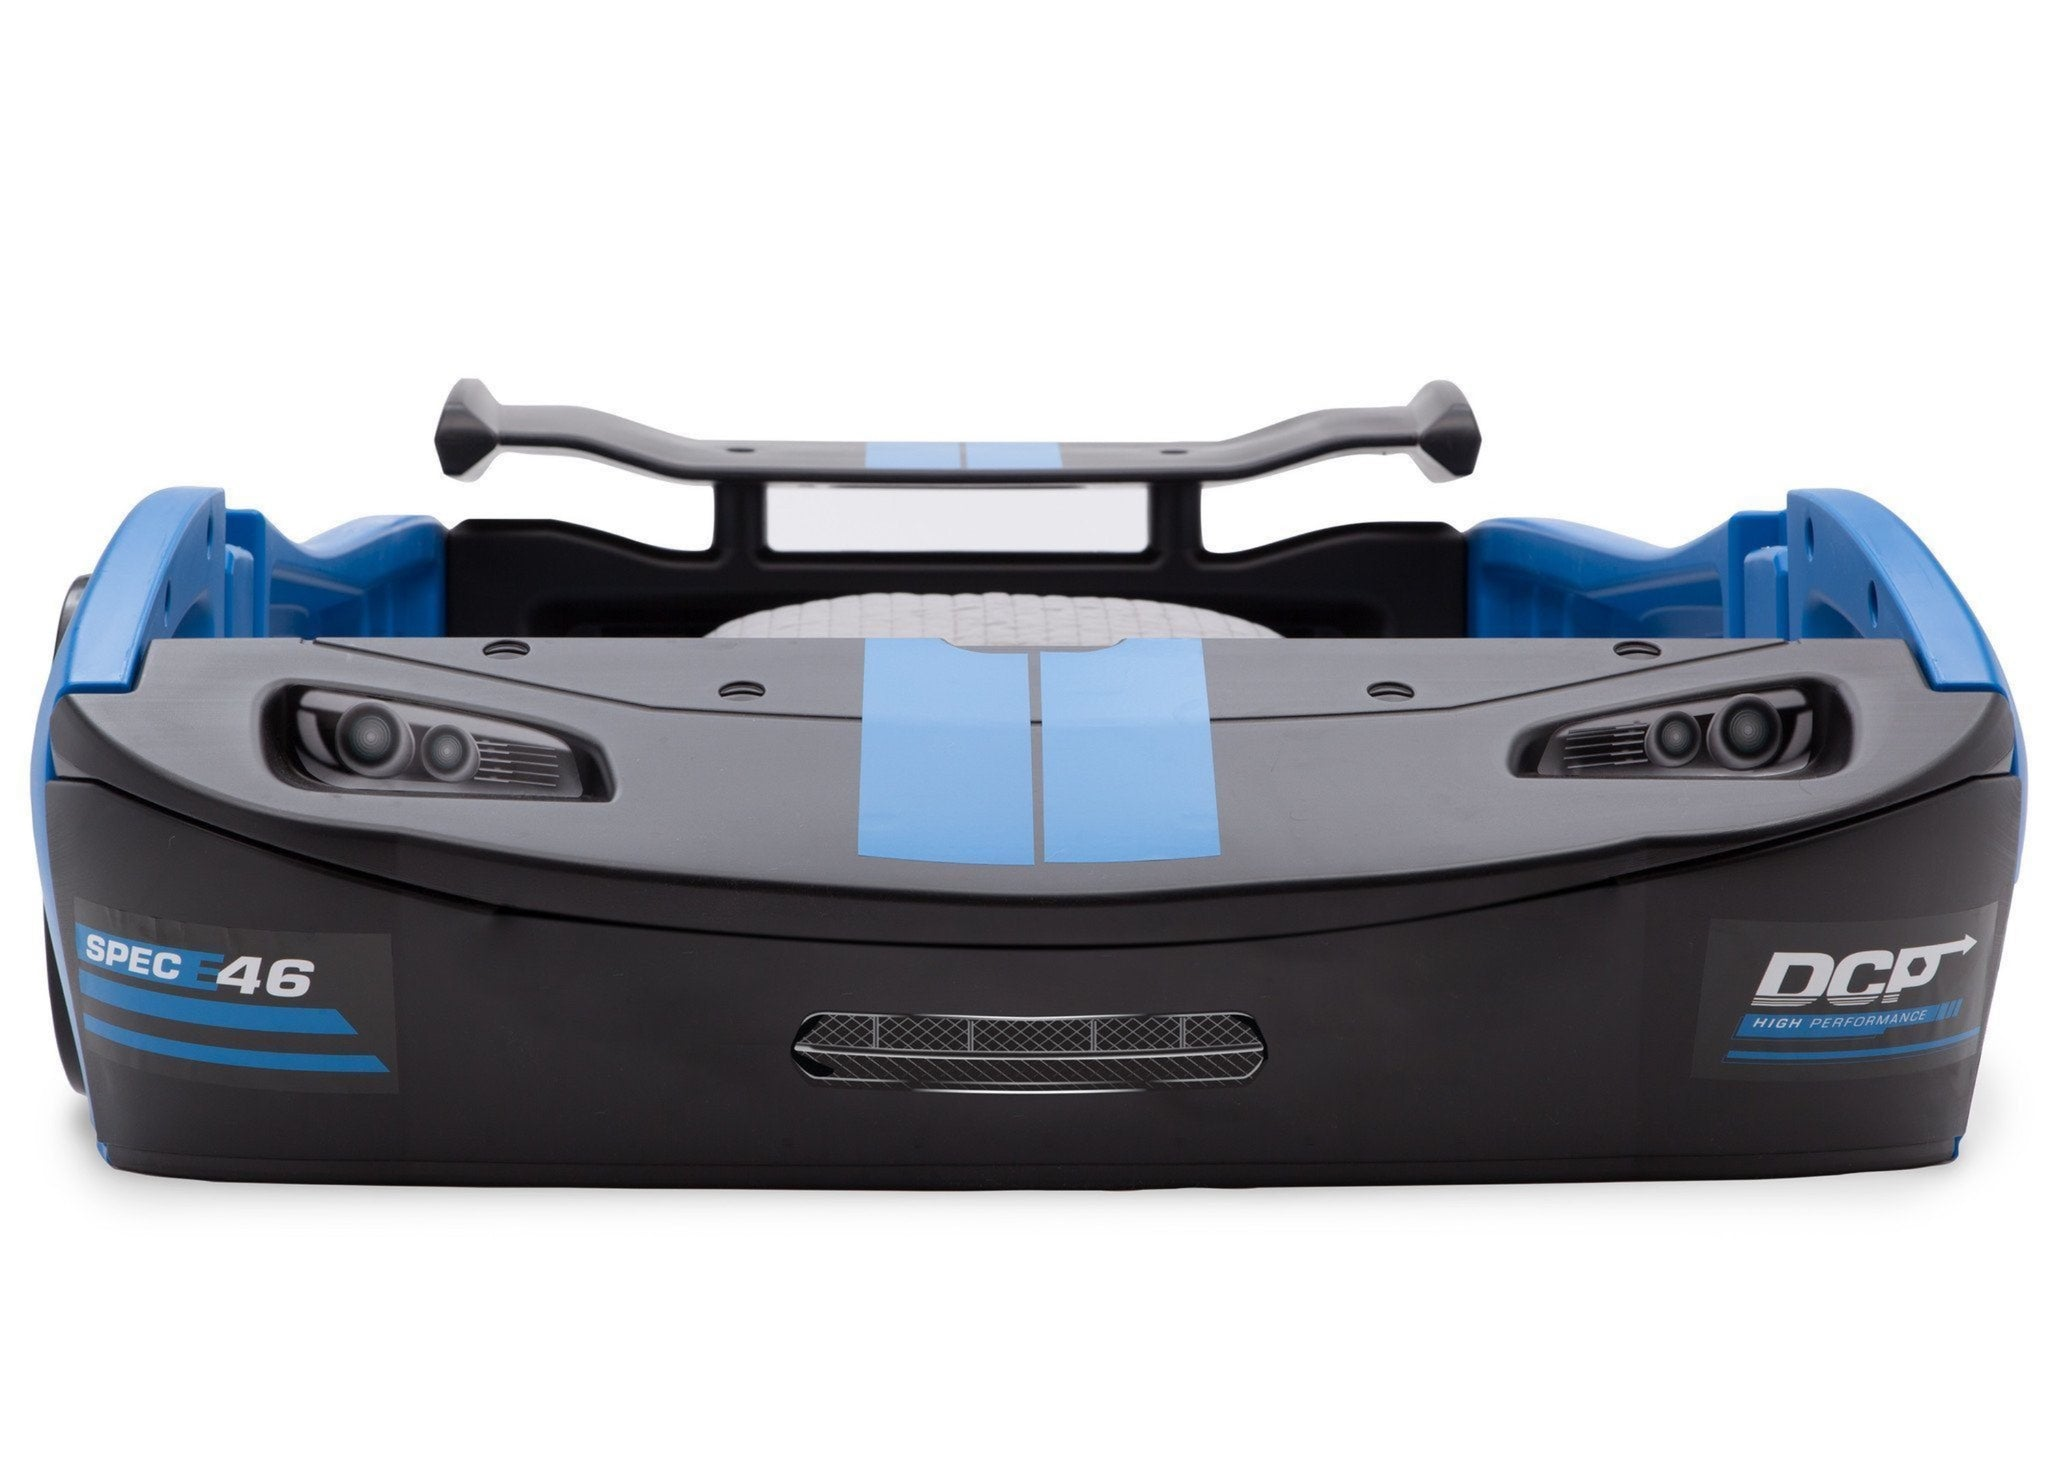 Delta Children Turbo Race Car Twin Bed, Blue and Black (485), Front View a2a